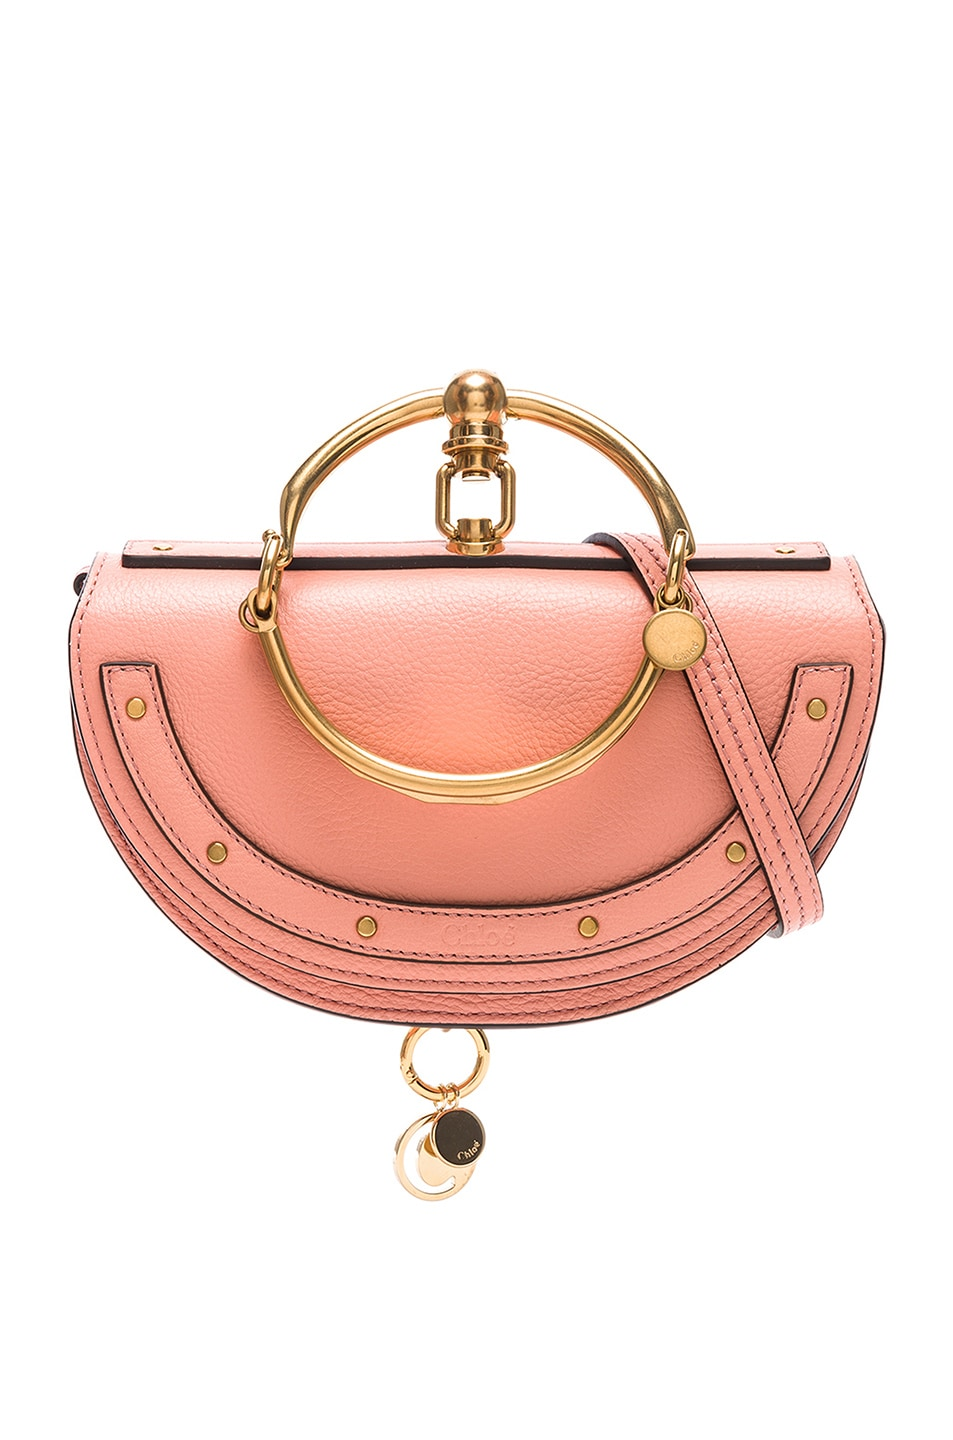 Image 1 of Chloe Small Nile Leather Minaudiere in Ideal Blush